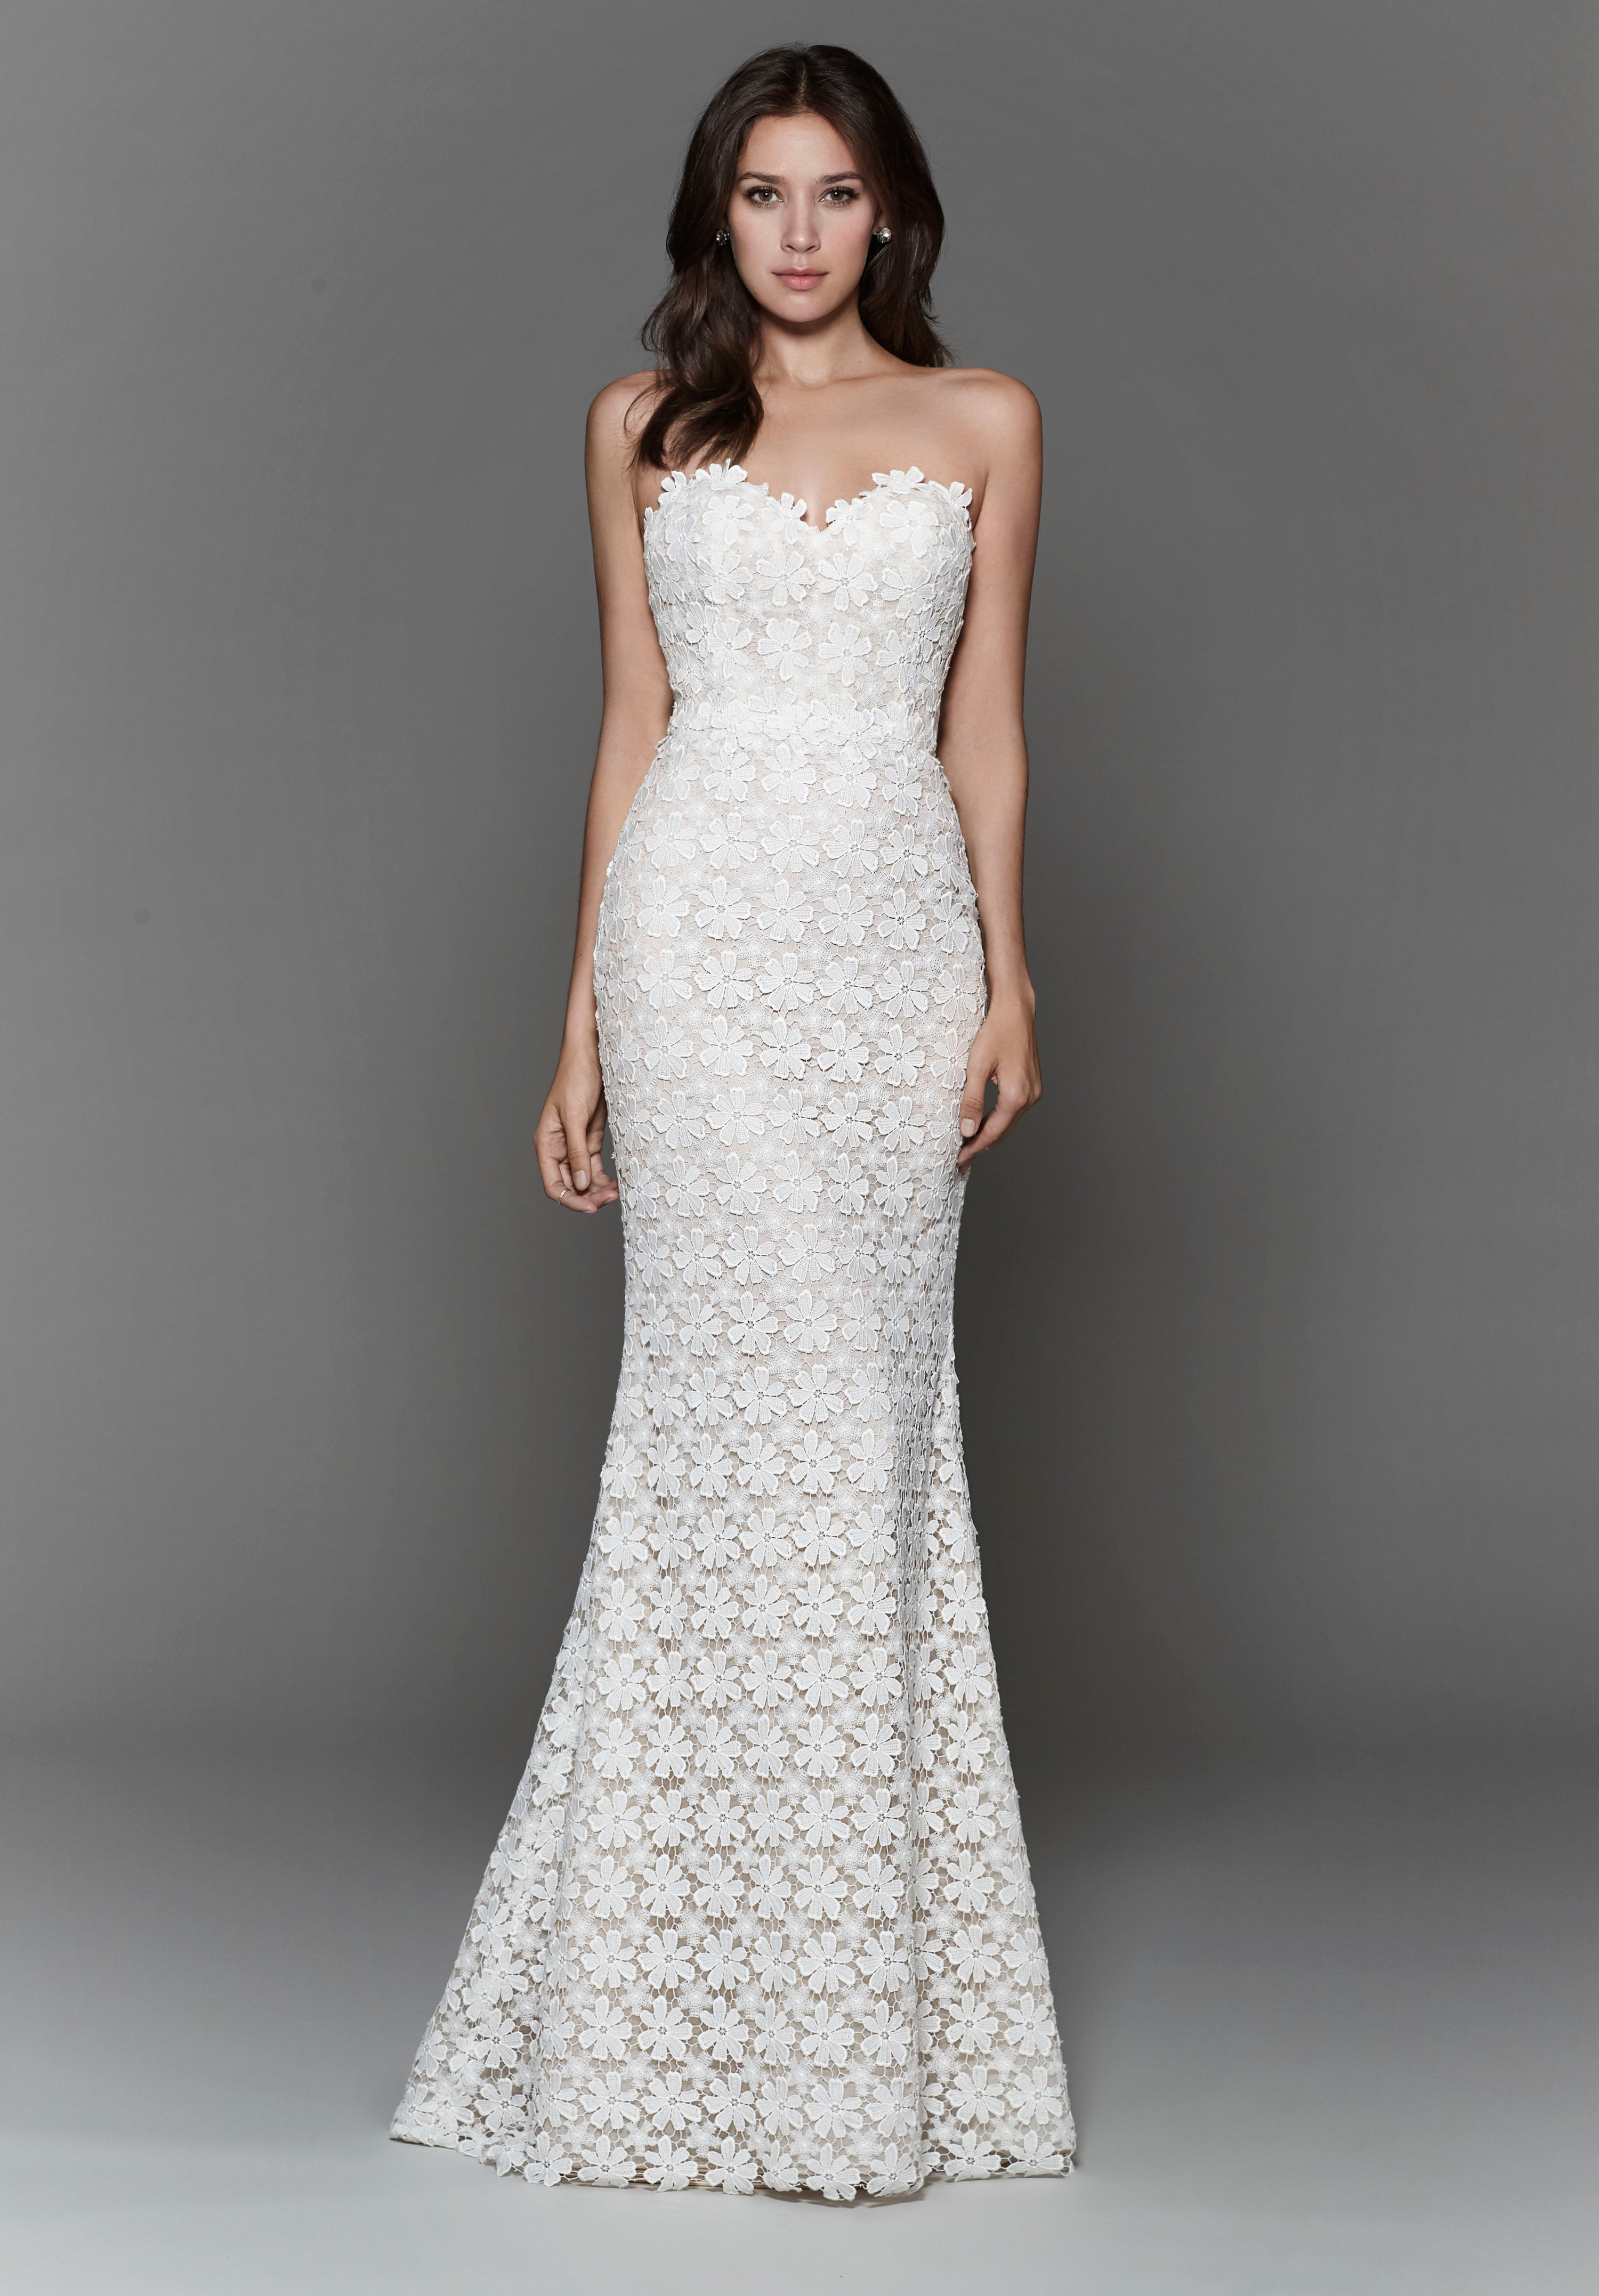 Bridal Gowns and Wedding Dresses by JLM Couture - Style 2701